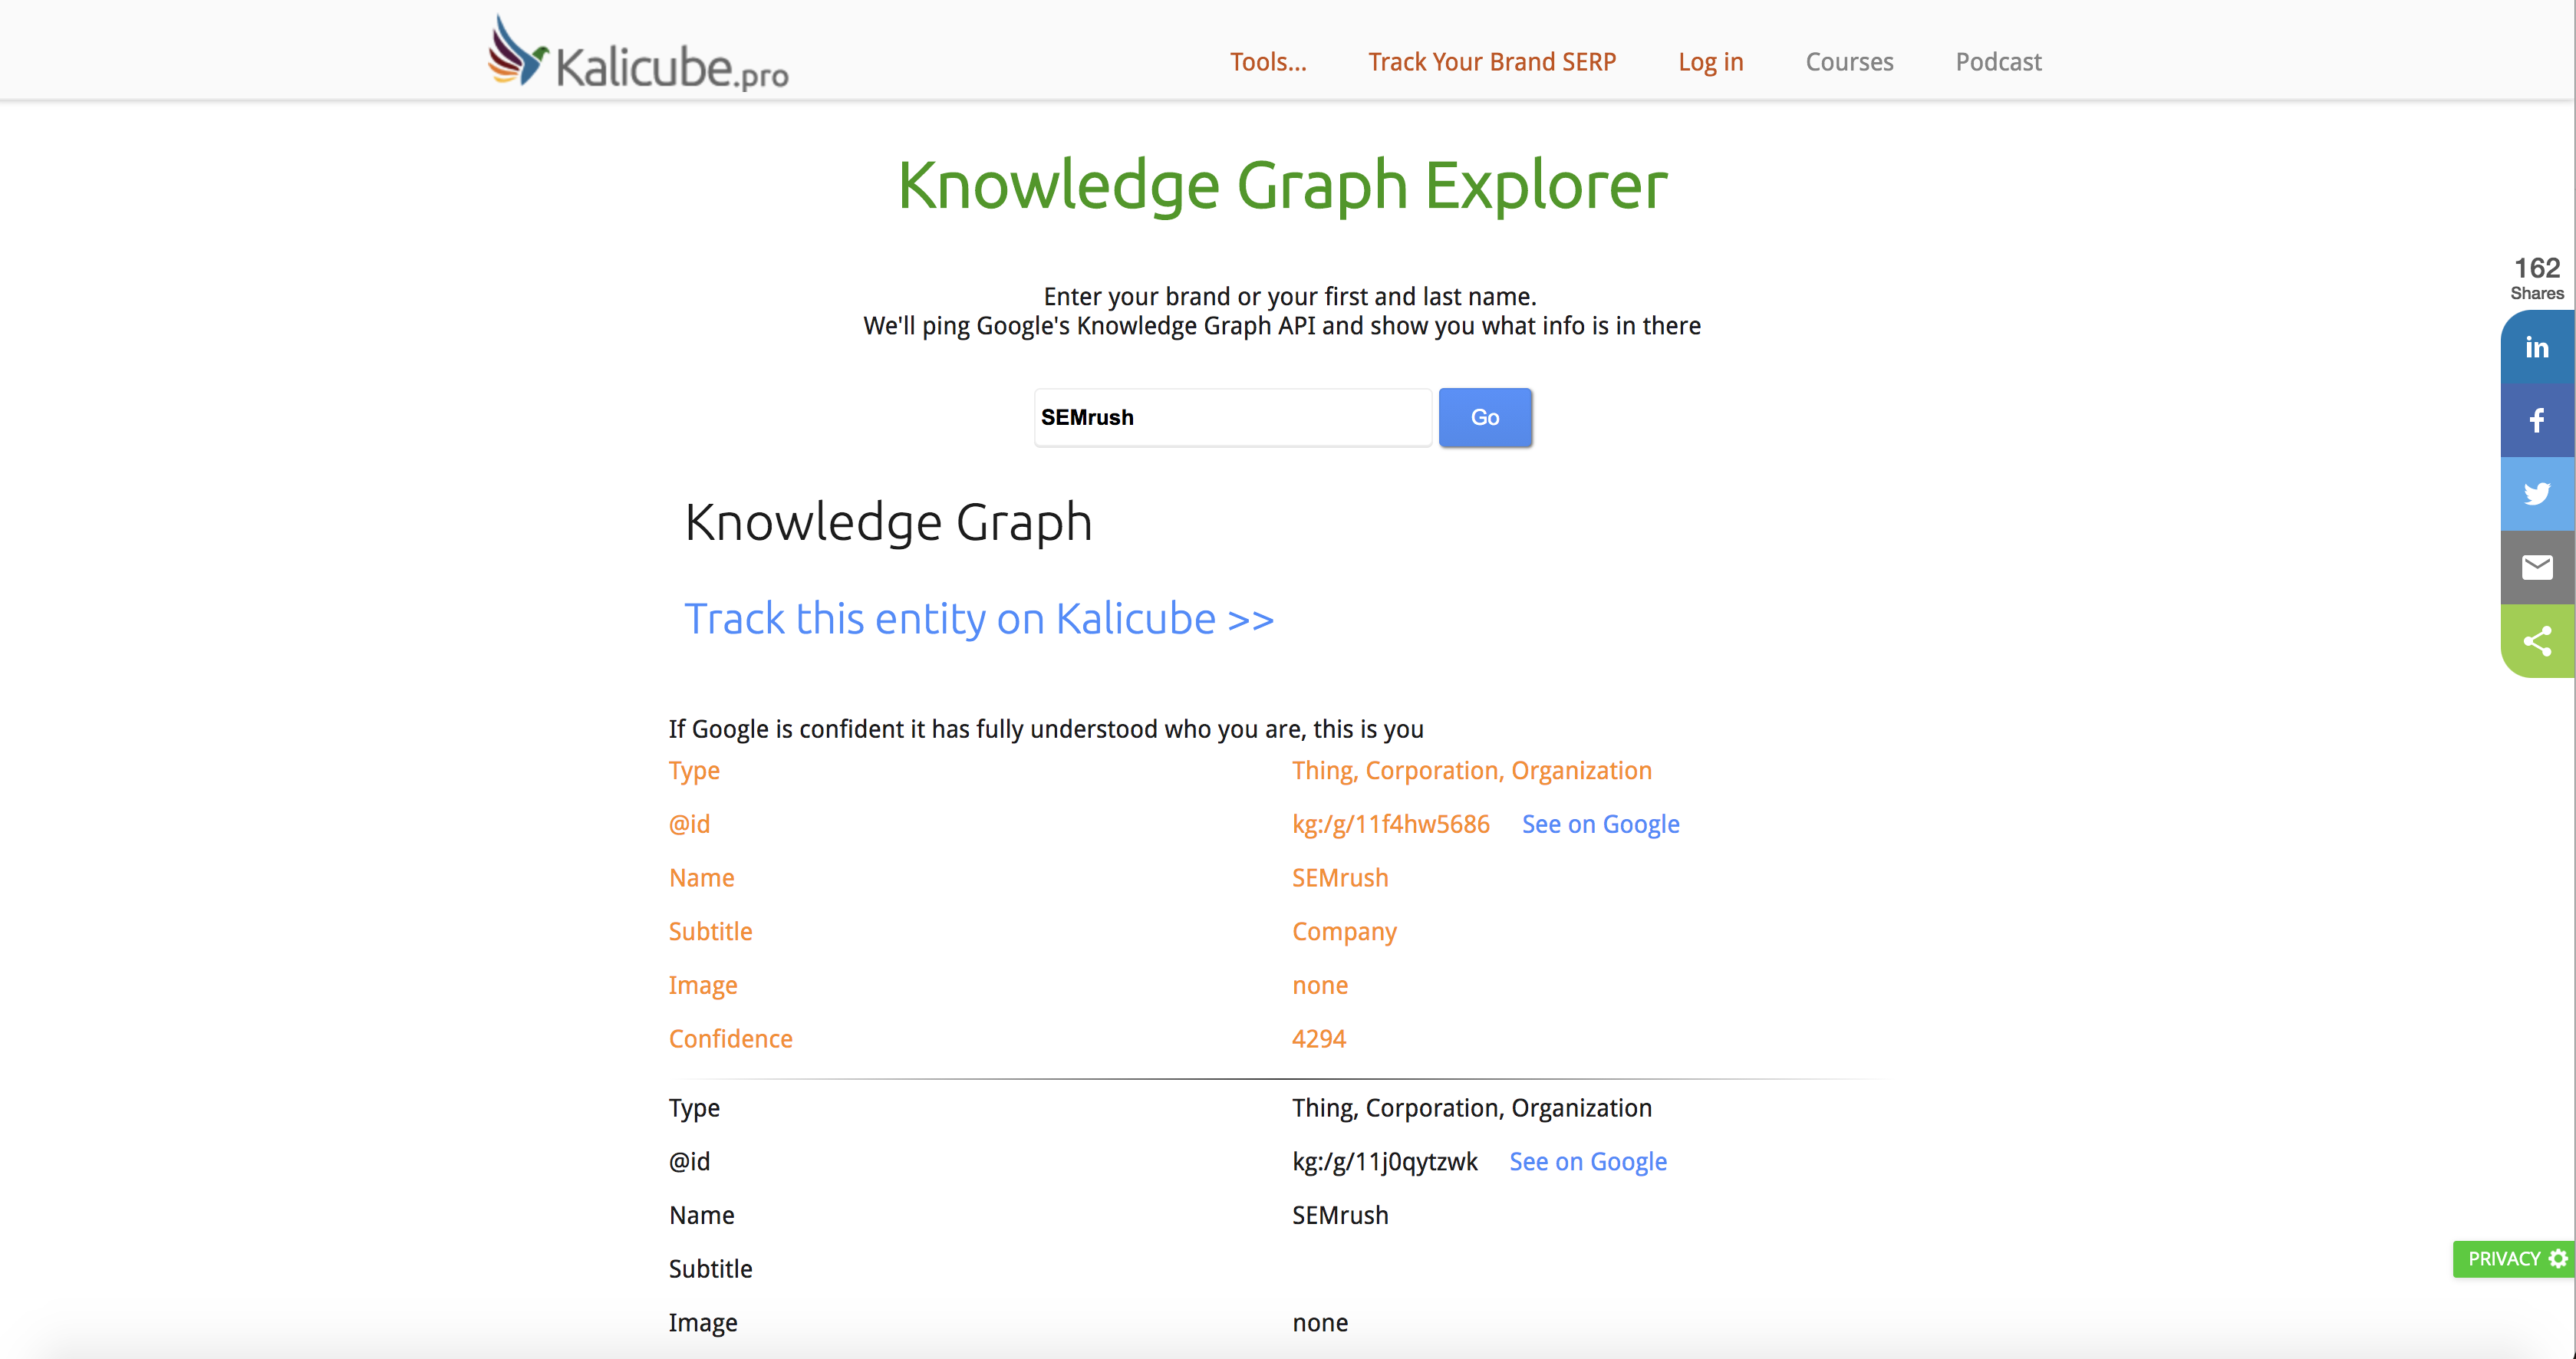 Kalicube knowledge graph tool